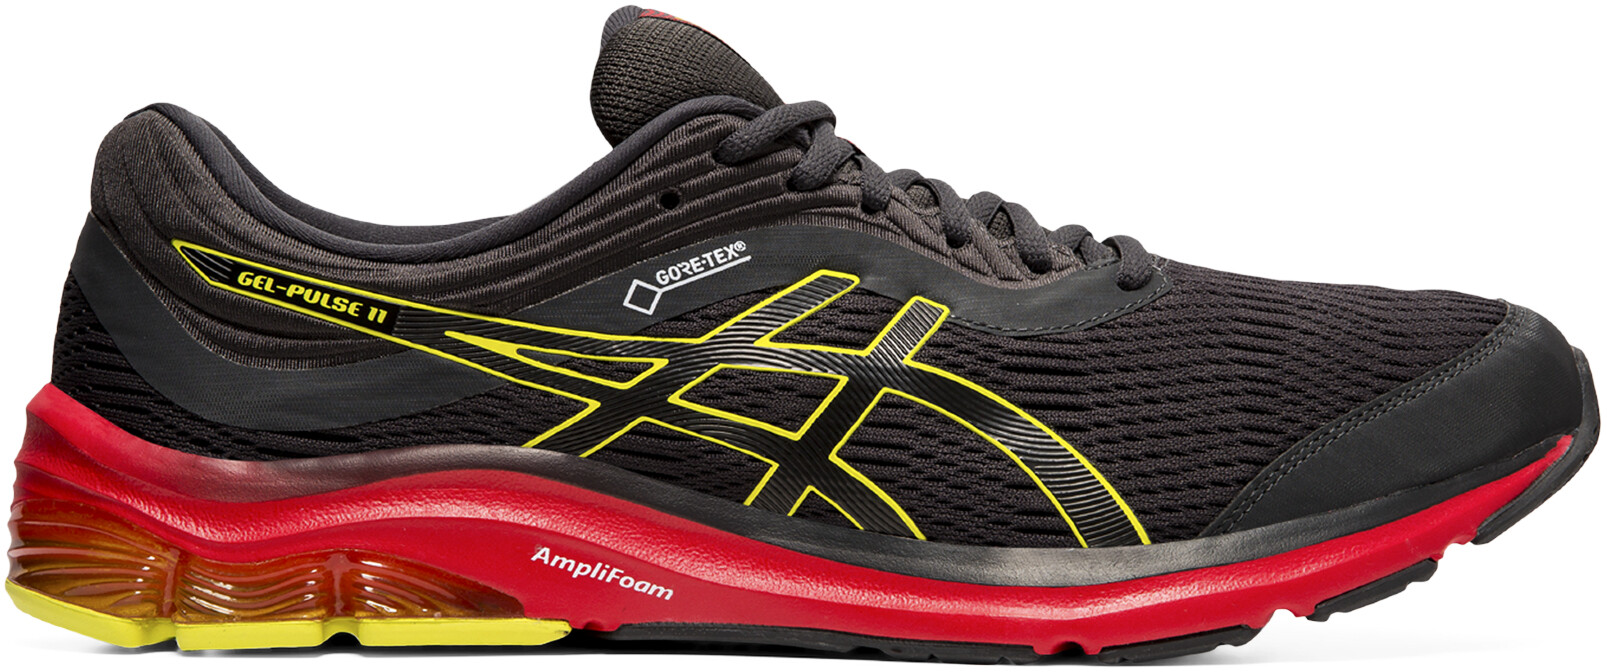 asics Gel-Pulse 11 G-TX Sko Herrer, graphite grey/sour yuzu | Running shoes